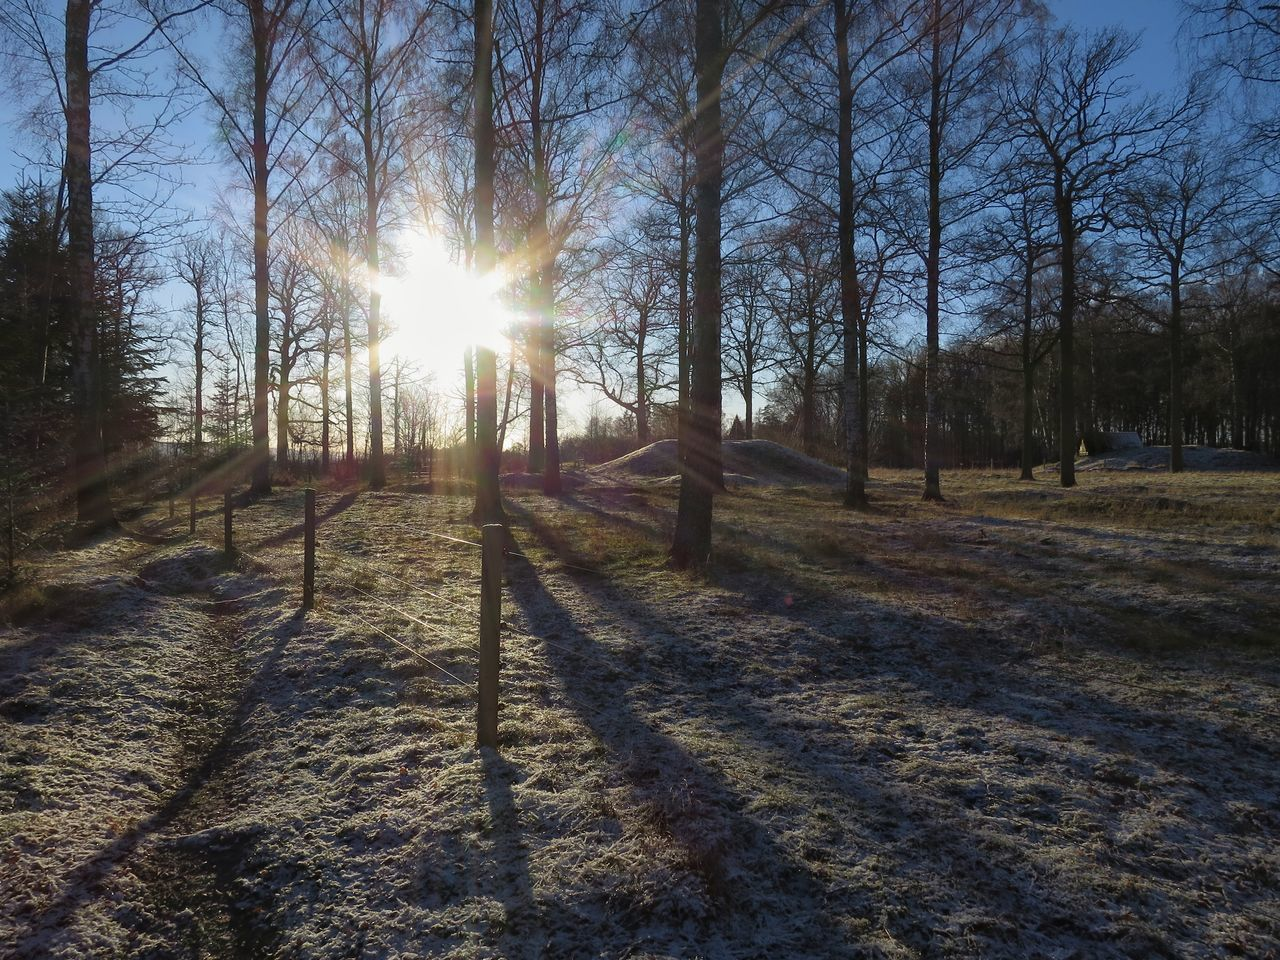 sunbeam, sunlight, tree, sun, lens flare, tranquility, nature, tranquil scene, bare tree, landscape, no people, day, outdoors, sunset, scenics, beauty in nature, winter, sky